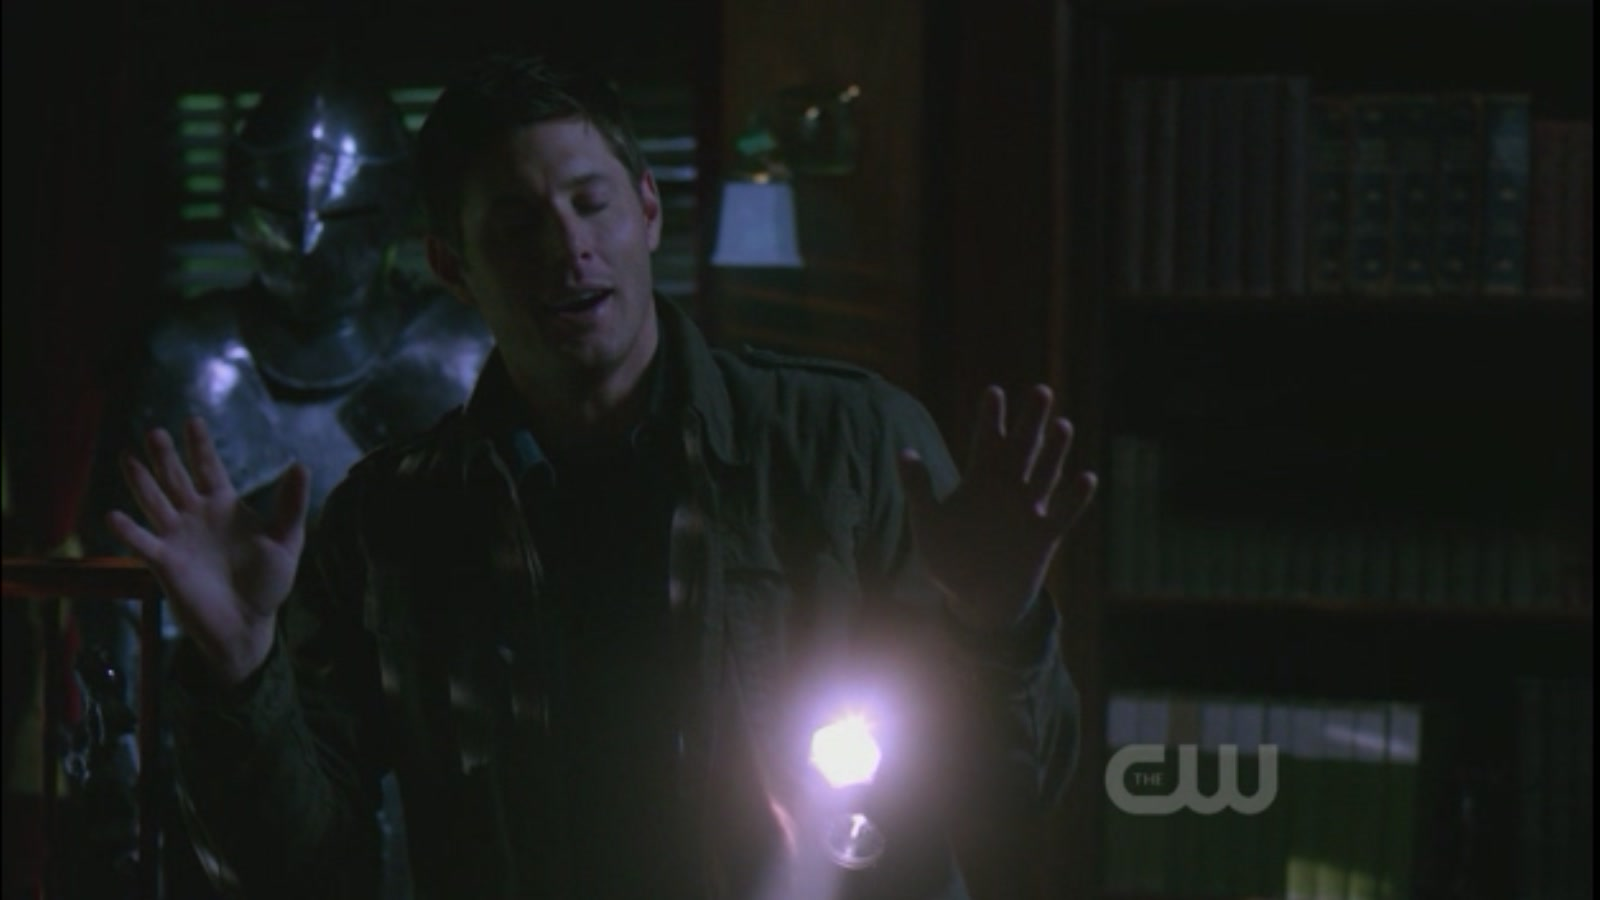 supernatural meet the new boss online Watch supernatural season 7 episode 1 - castiel does not kill sam, dean and bobby, but warns them not to interfere in his business assuming his new role as god, castiel sets.